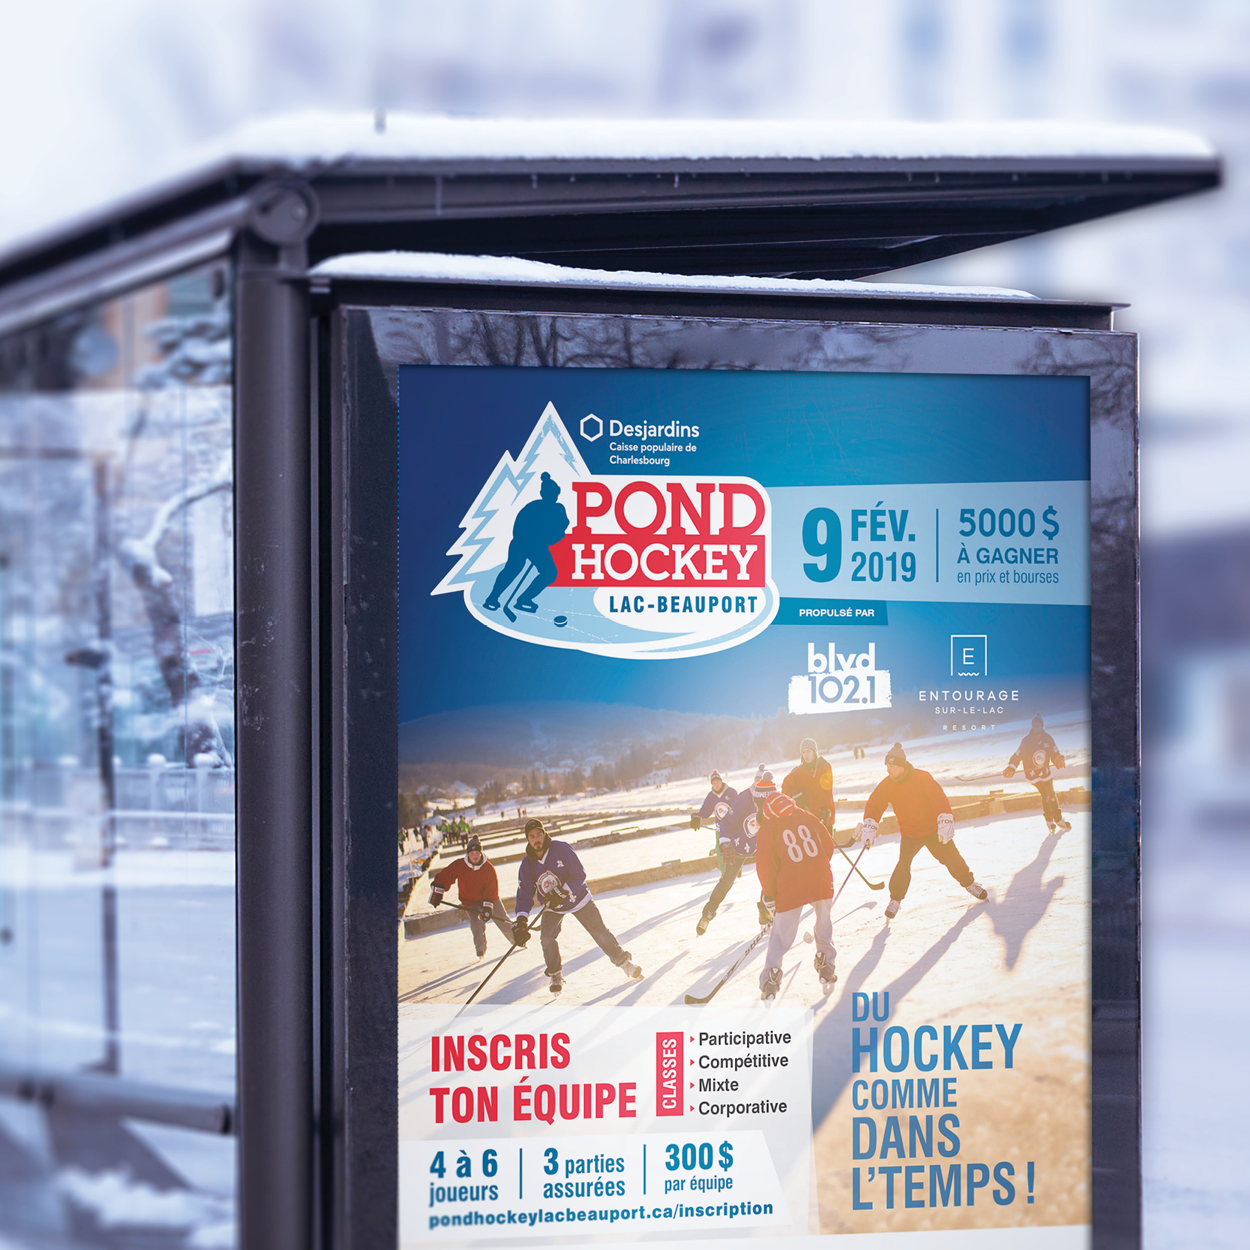 Pond Hockey Lac-Beauport - Identité et site web promotionnel